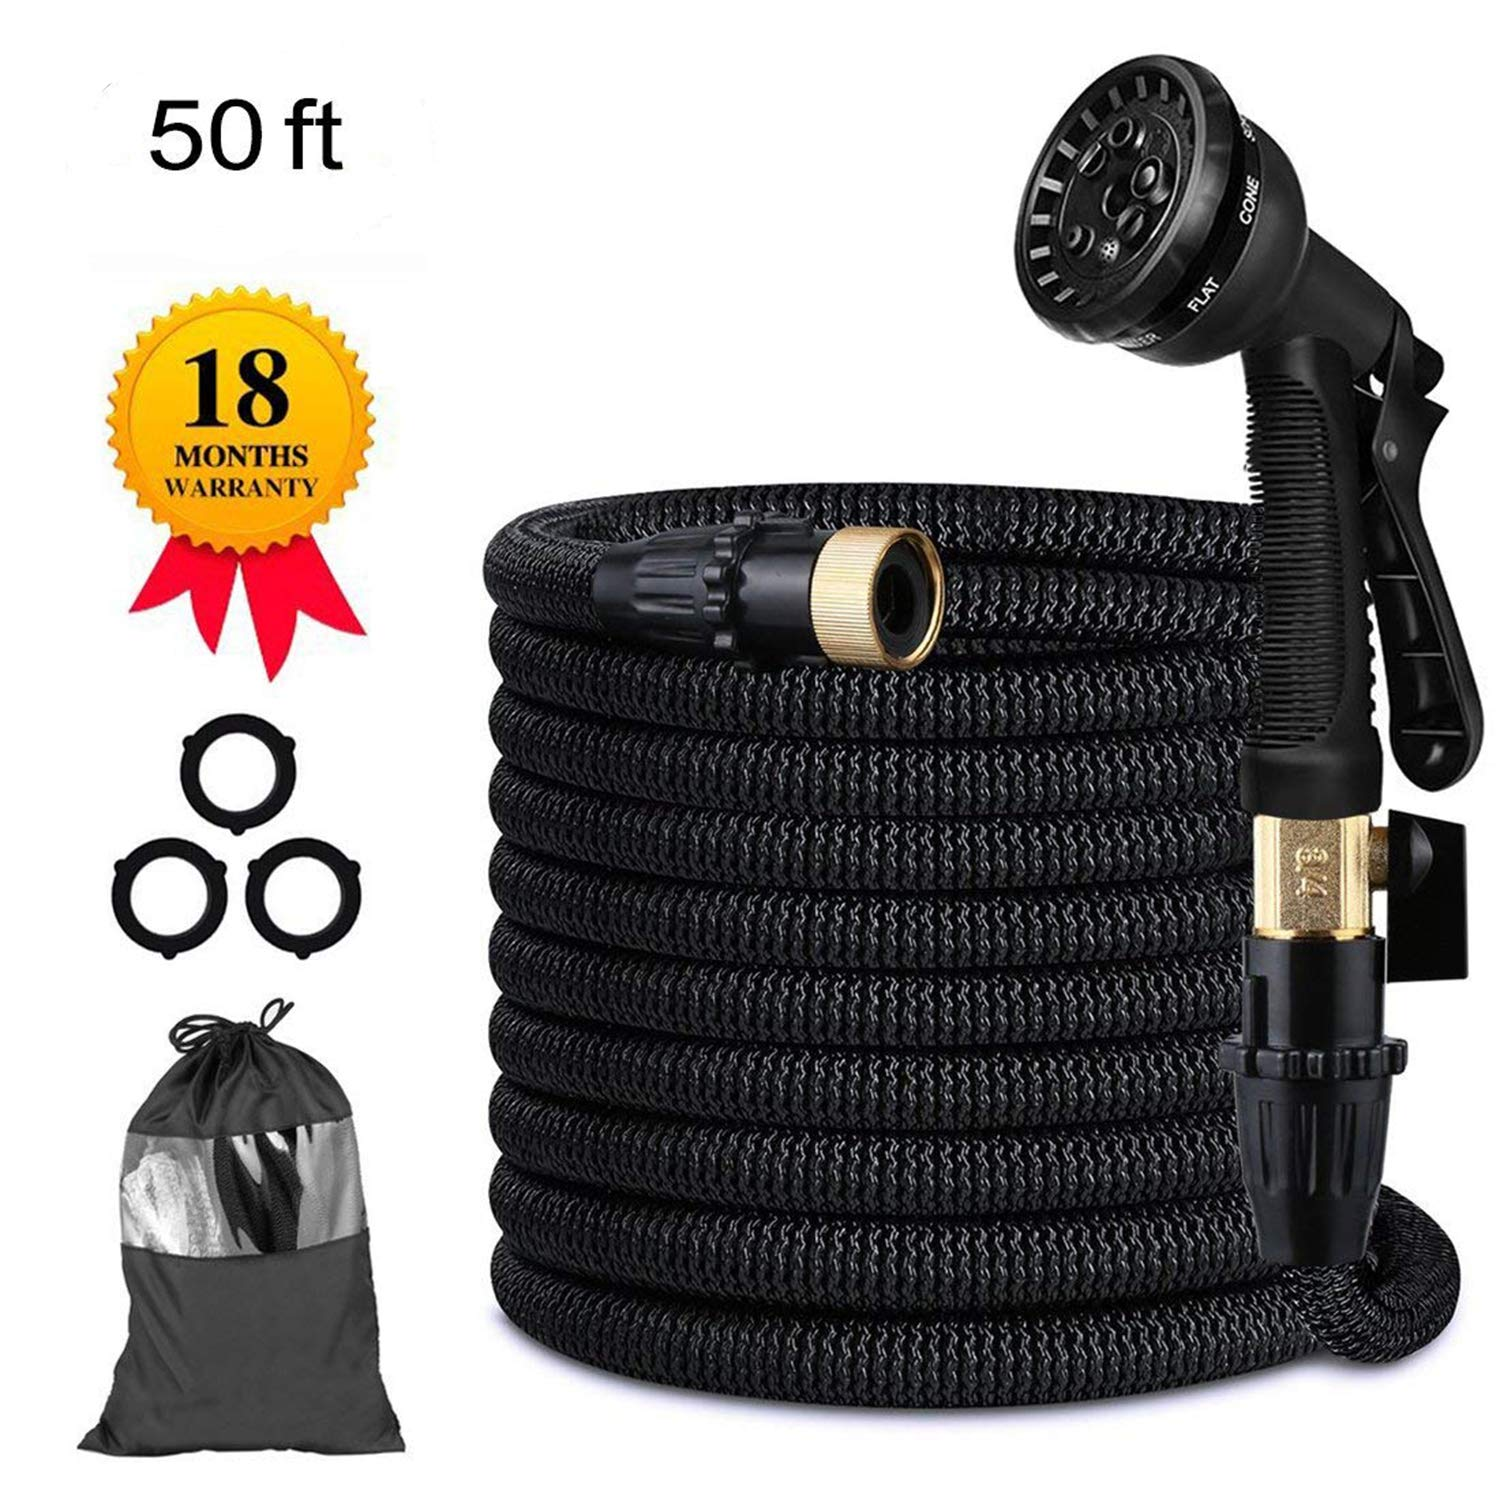 Candywe 50FT Expandable Garden Hose, Flexible Expanding Water Hose with 8 Function Spray Nozzle, Double Latex Core,3/4 Solid Brass Fittings,Storage Bag for Watering Plants, Car, Pet and Cleaning by Candywe